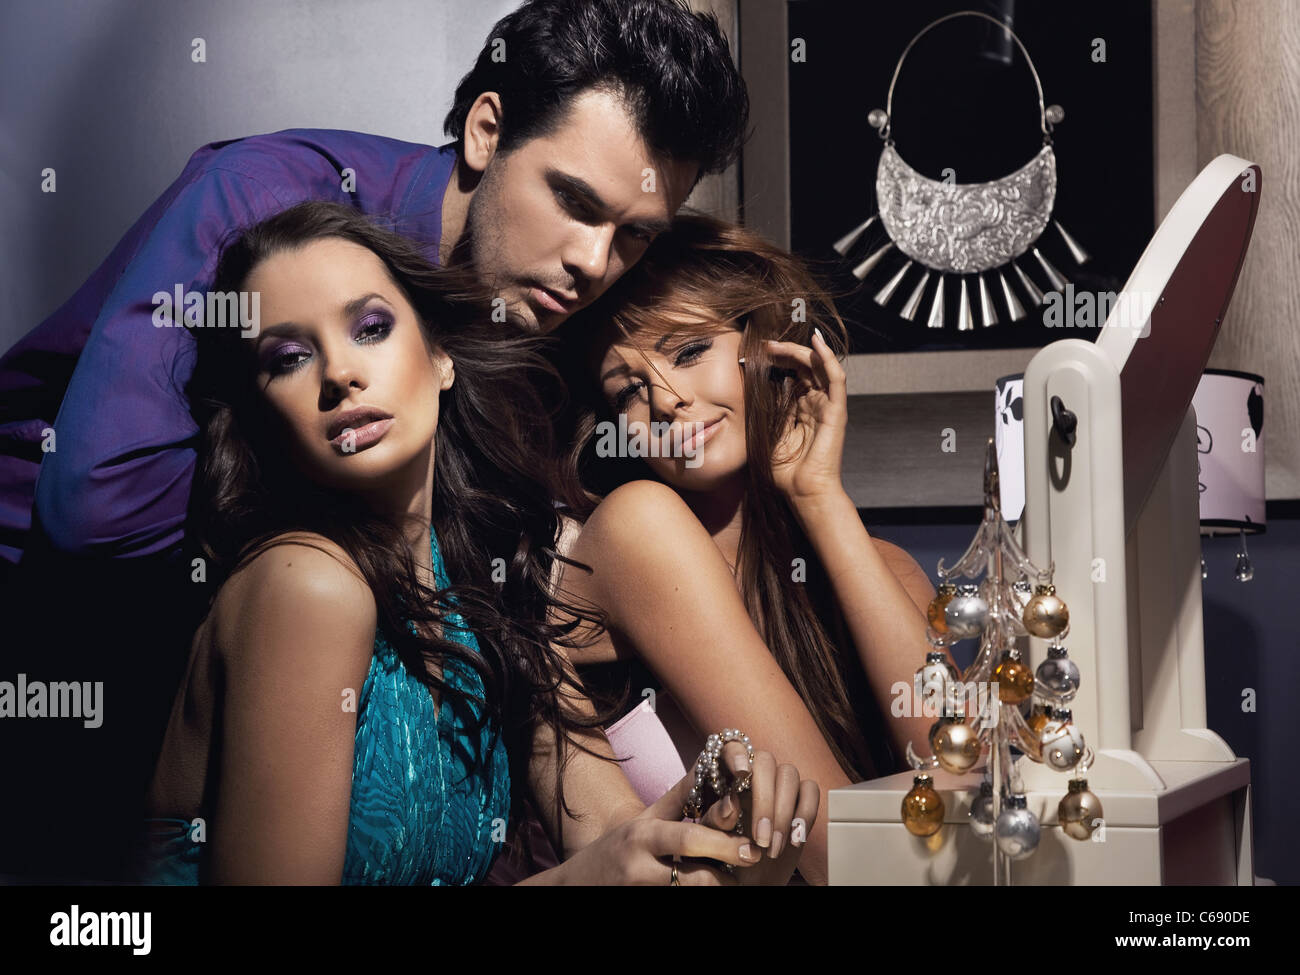 Two pretty girls and one handsome man posing - Stock Image